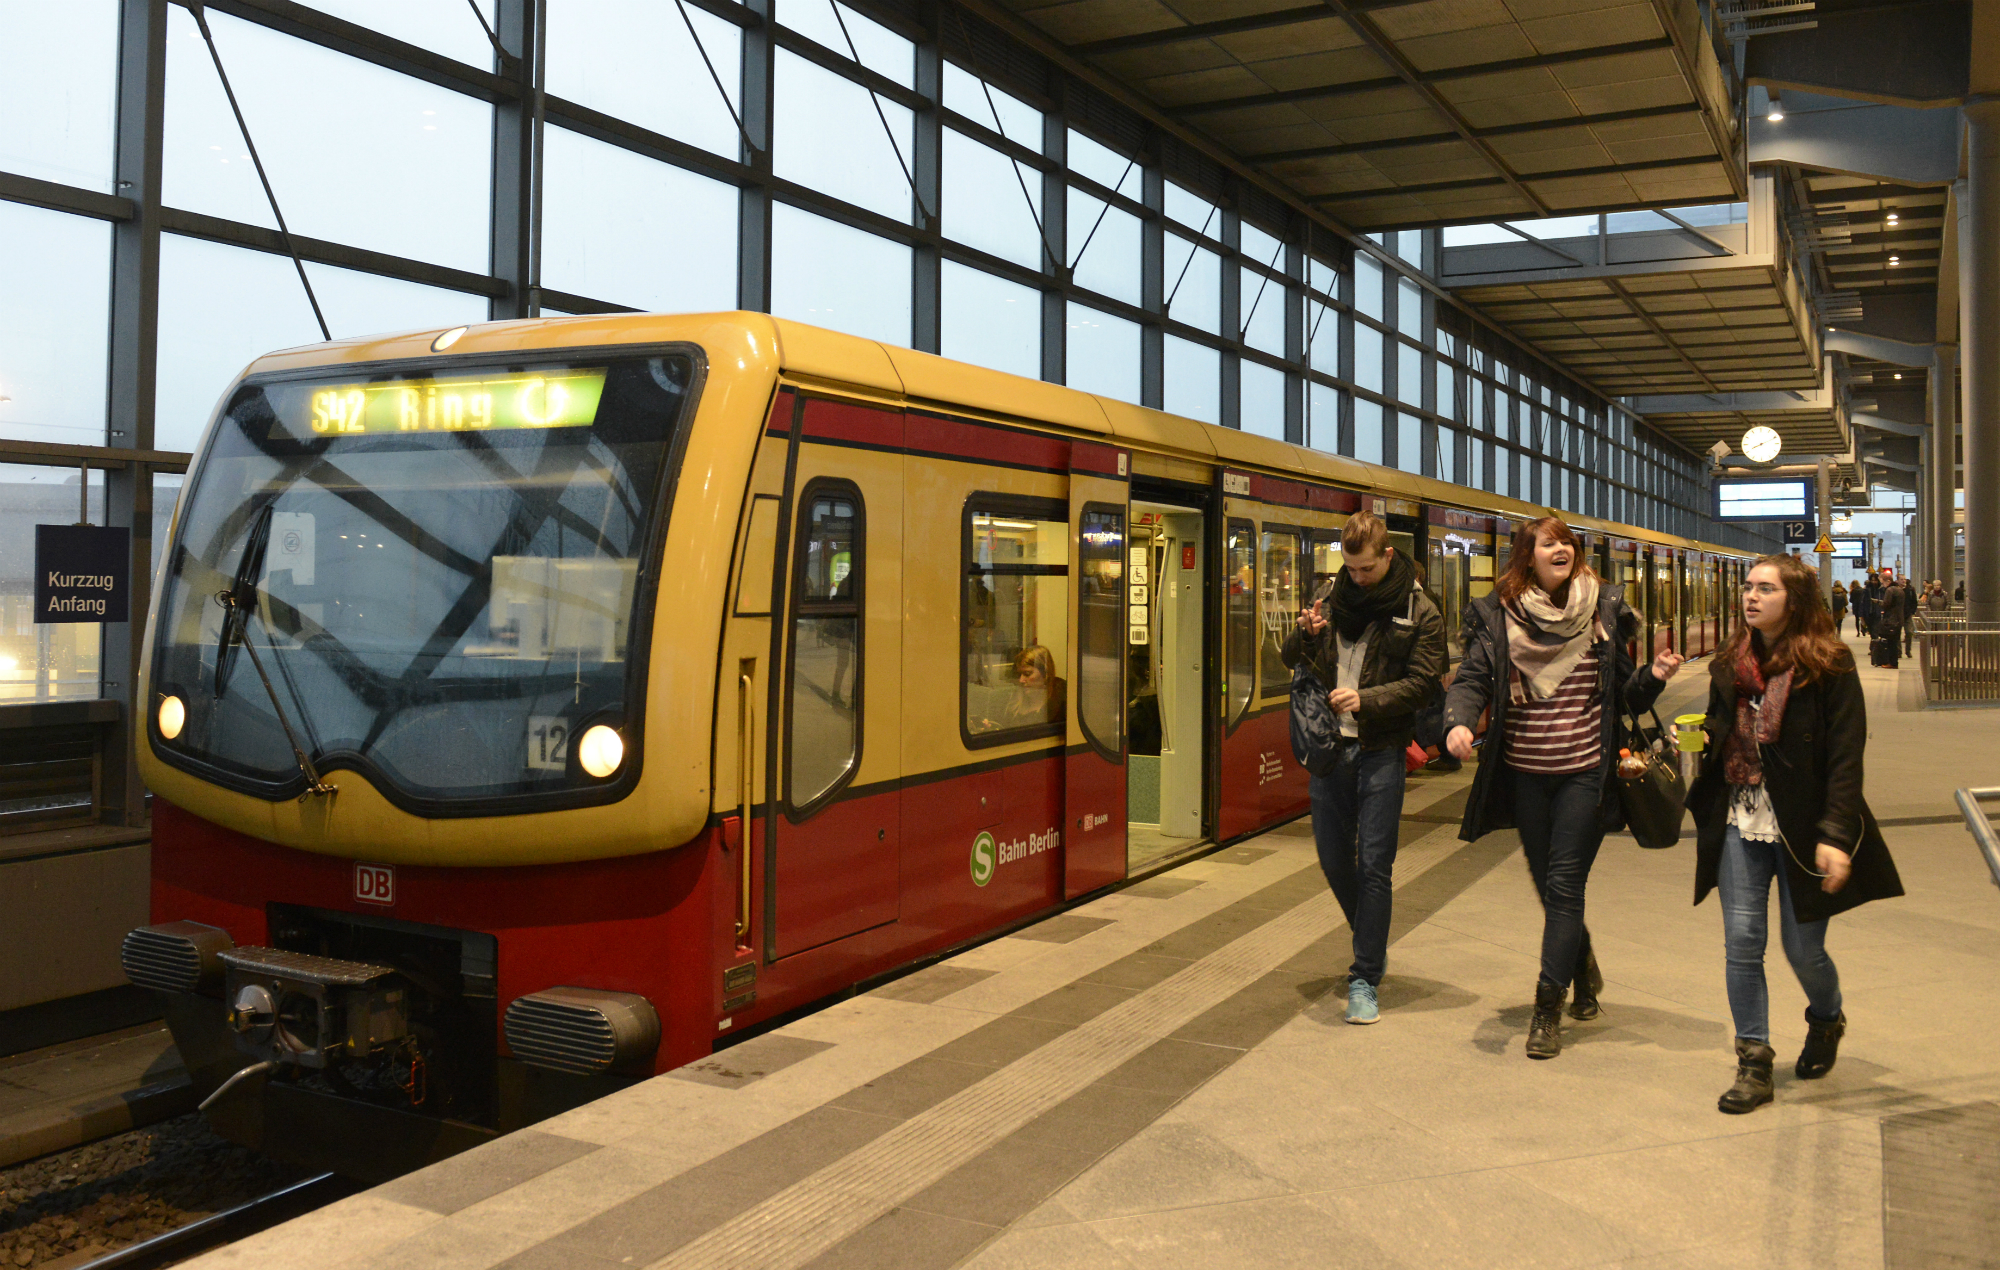 NME Festival blog: German train network scraps plan to deter homeless with atonal music